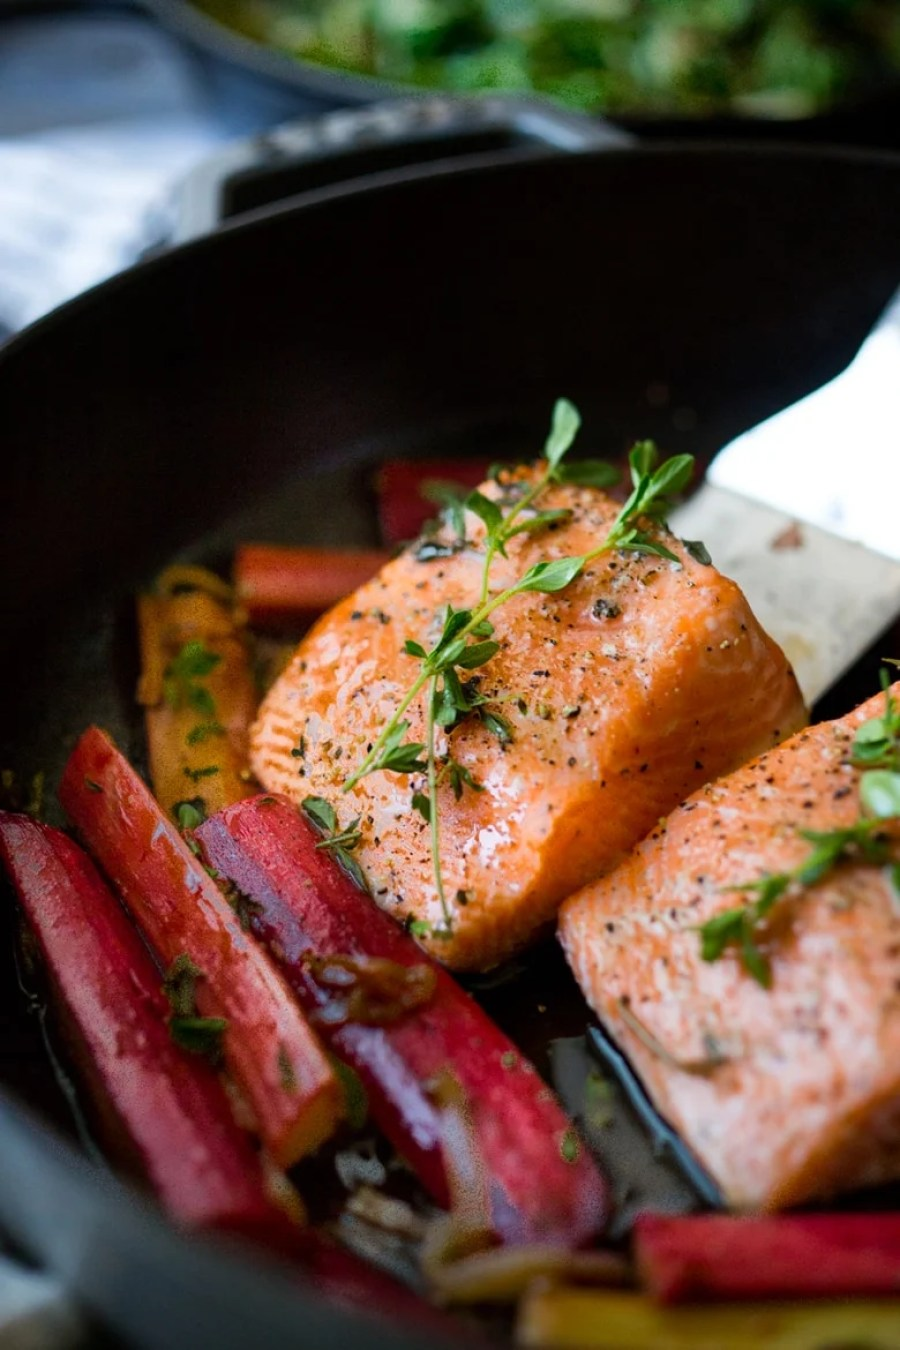 Roasted Salmon with Rhubarb and Chard- a quick healthy meal that can be made in 30 minutes. |www.feastingathome.com